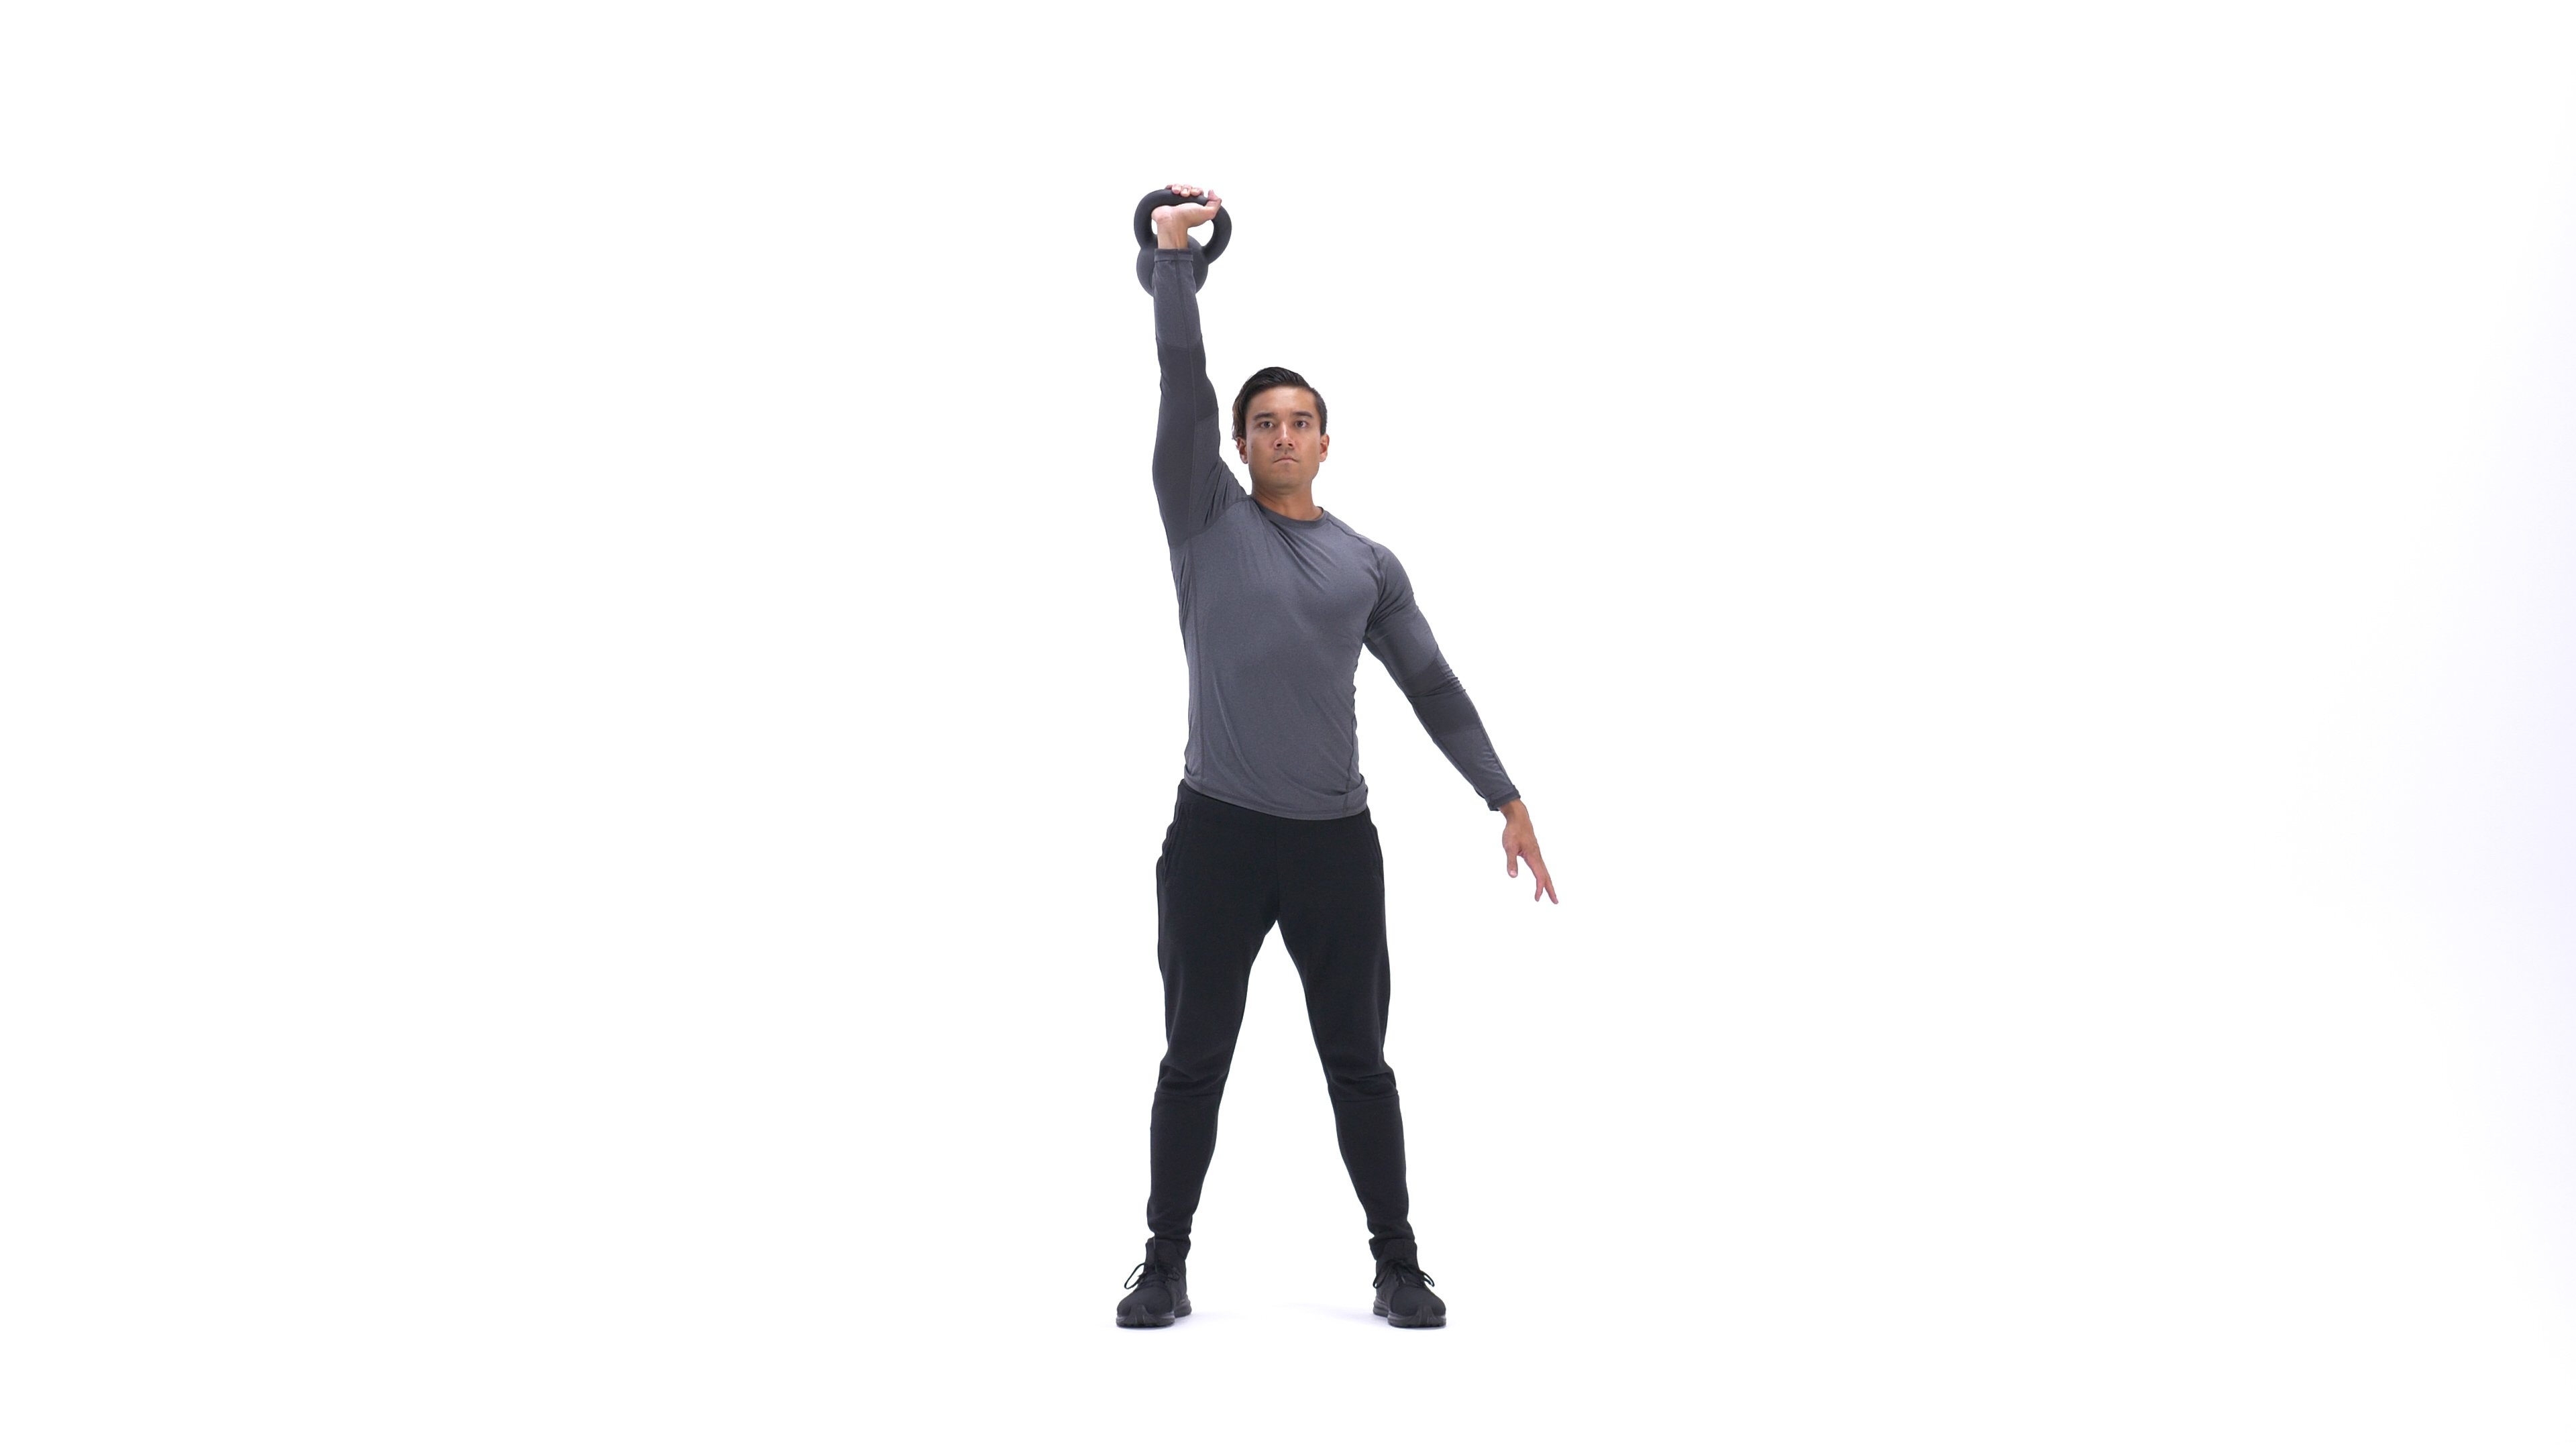 Single-arm kettlebell push-press image